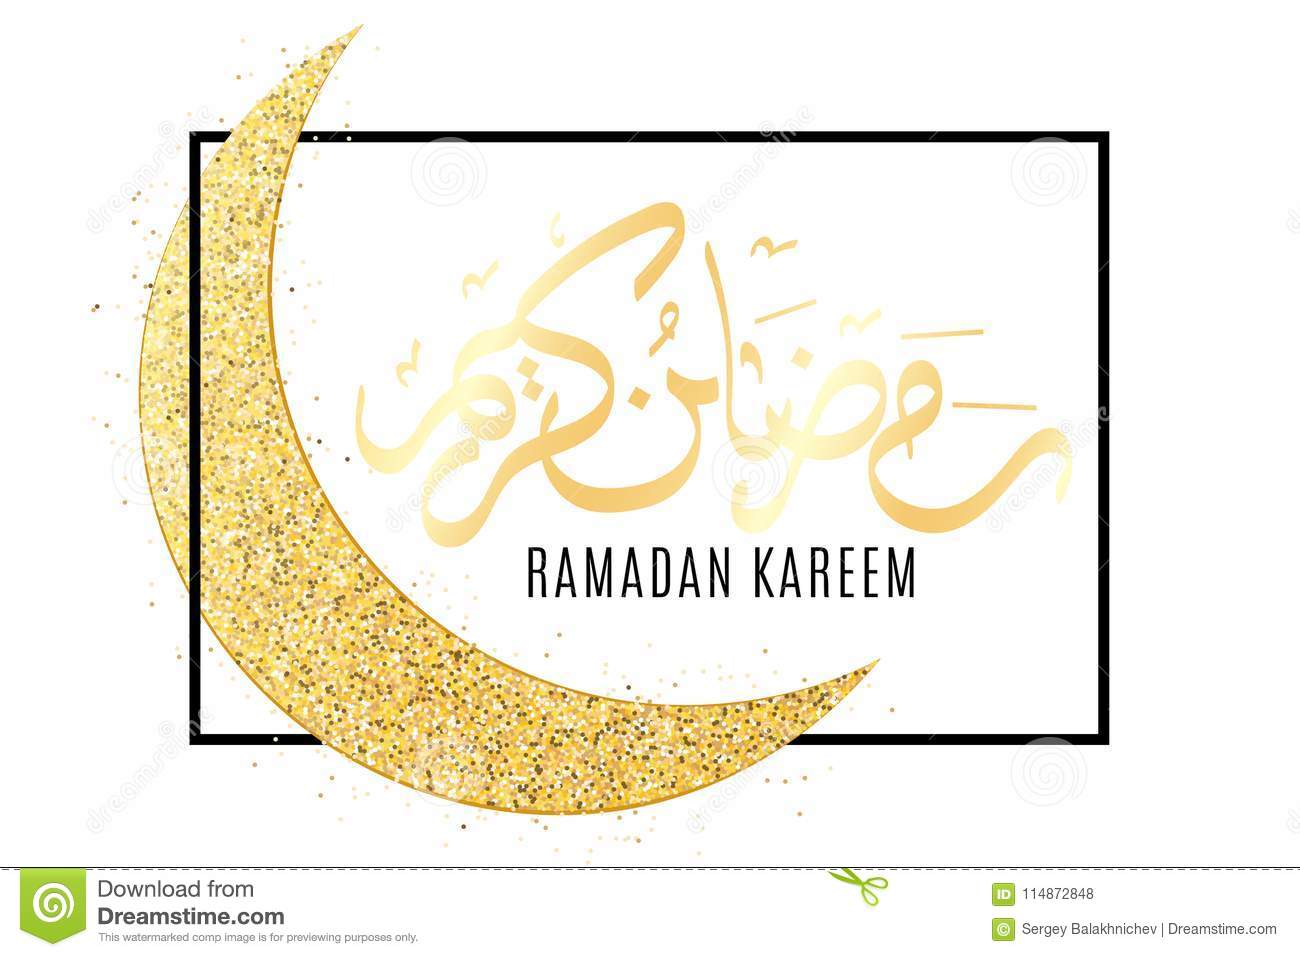 Ramadan Kareem. Religion Holy Month. Moon from gold glitters in a frame on a white background. Luxurious month. Arabic calligraphy